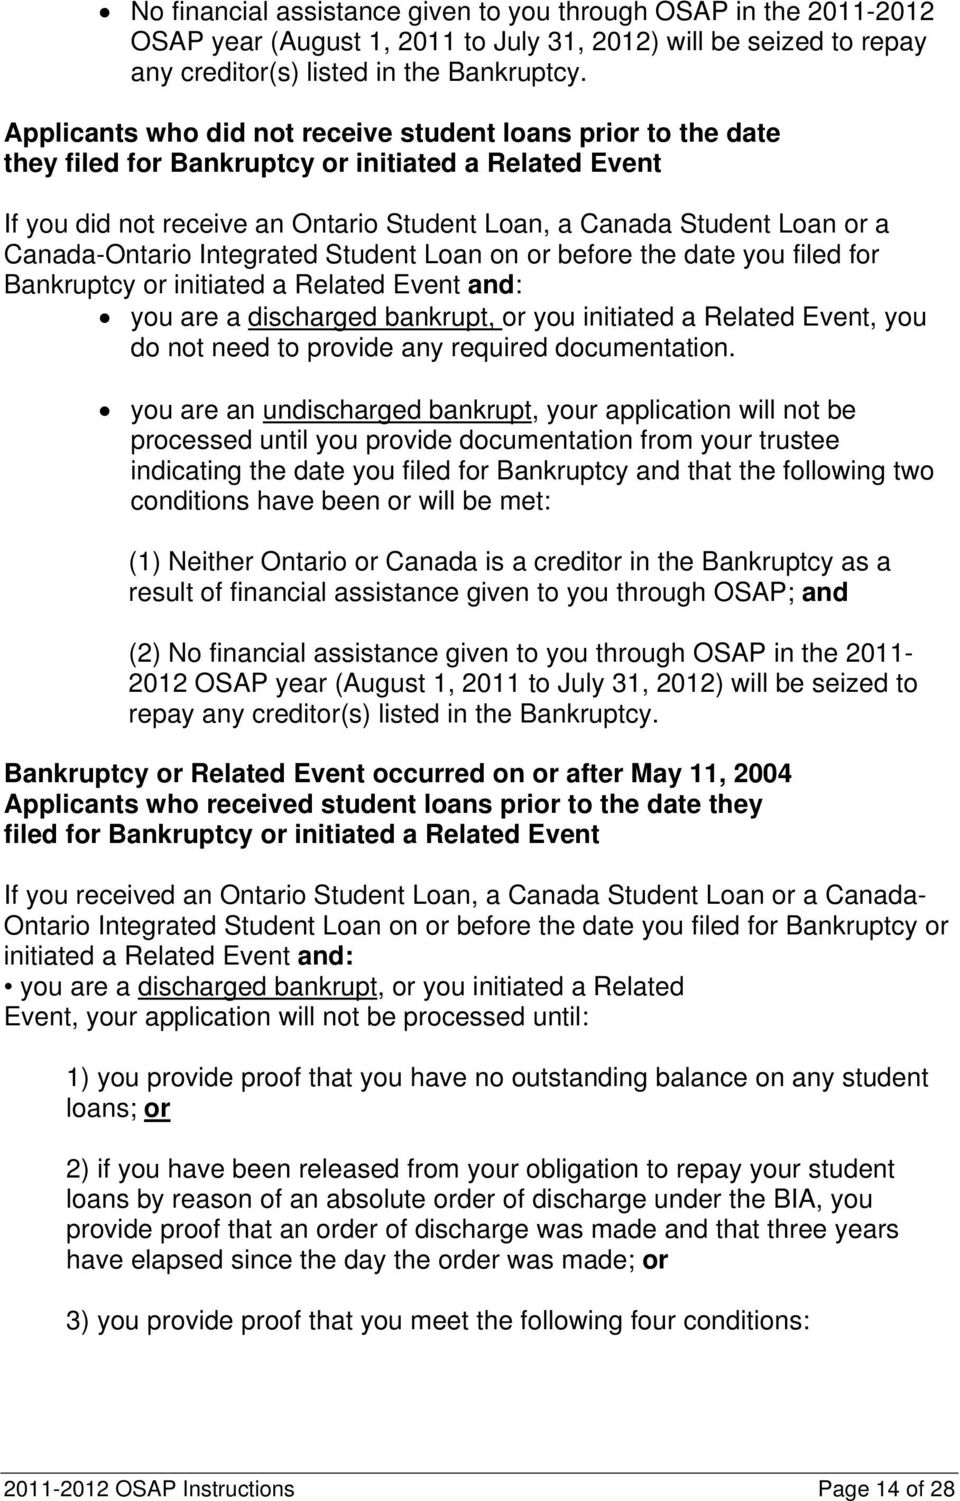 Canada-Ontario Integrated Student Loan on or before the date you filed for Bankruptcy or initiated a Related Event and: you are a discharged bankrupt, or you initiated a Related Event, you do not